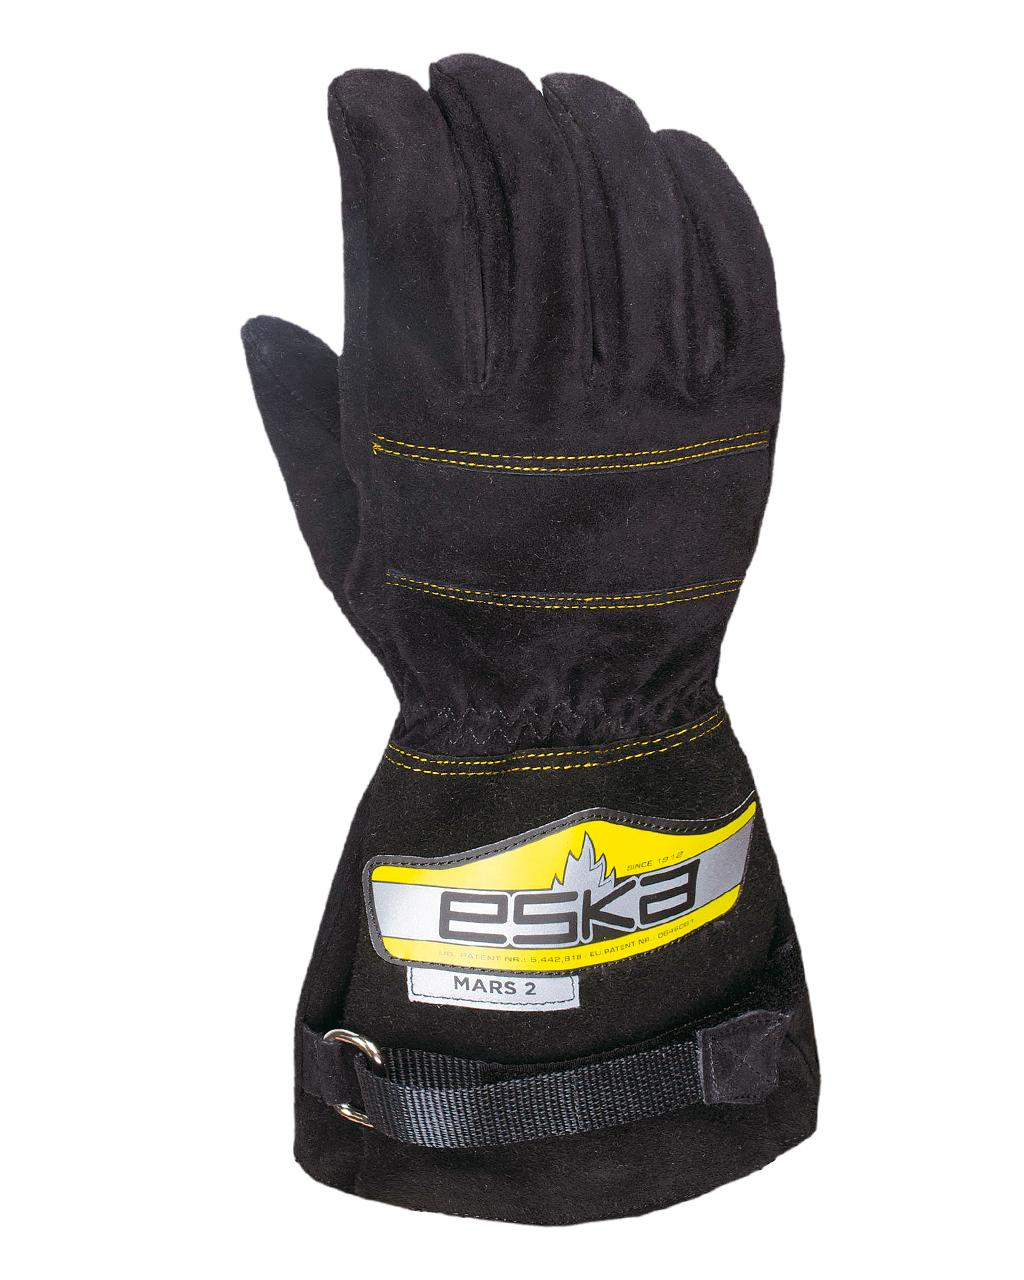 Firemans Gloves Mars 2